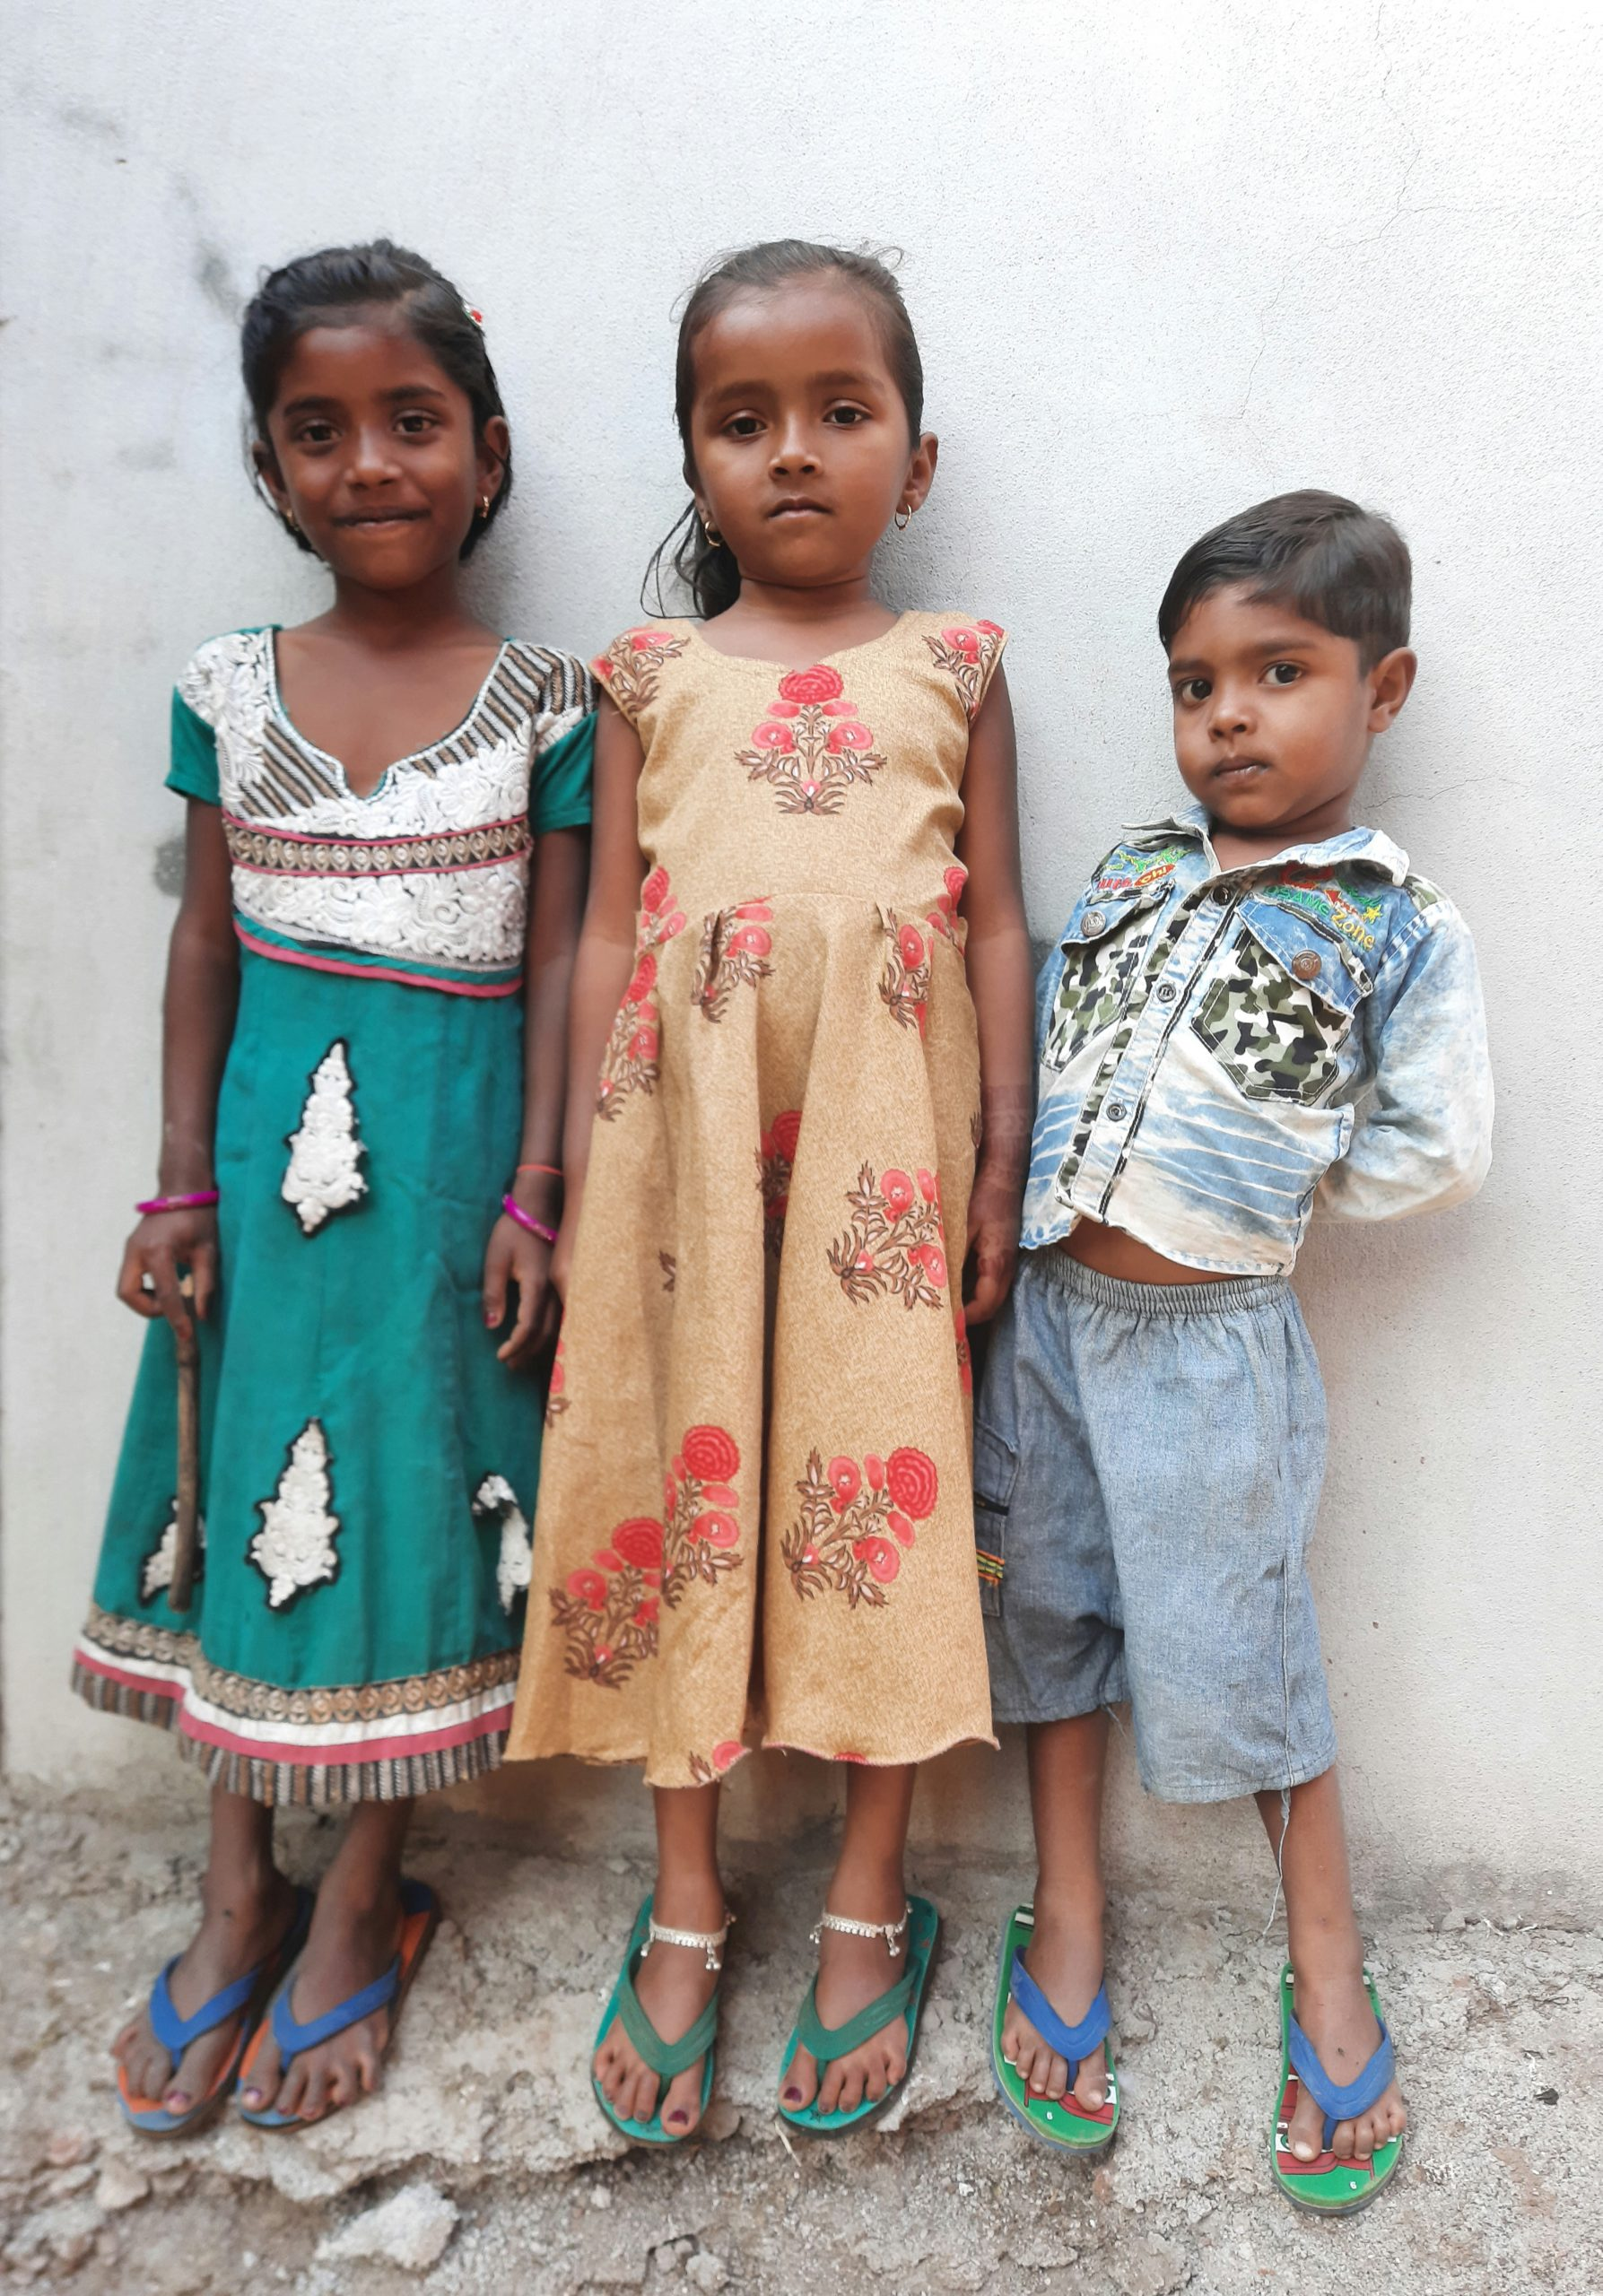 Kids posing against the wall